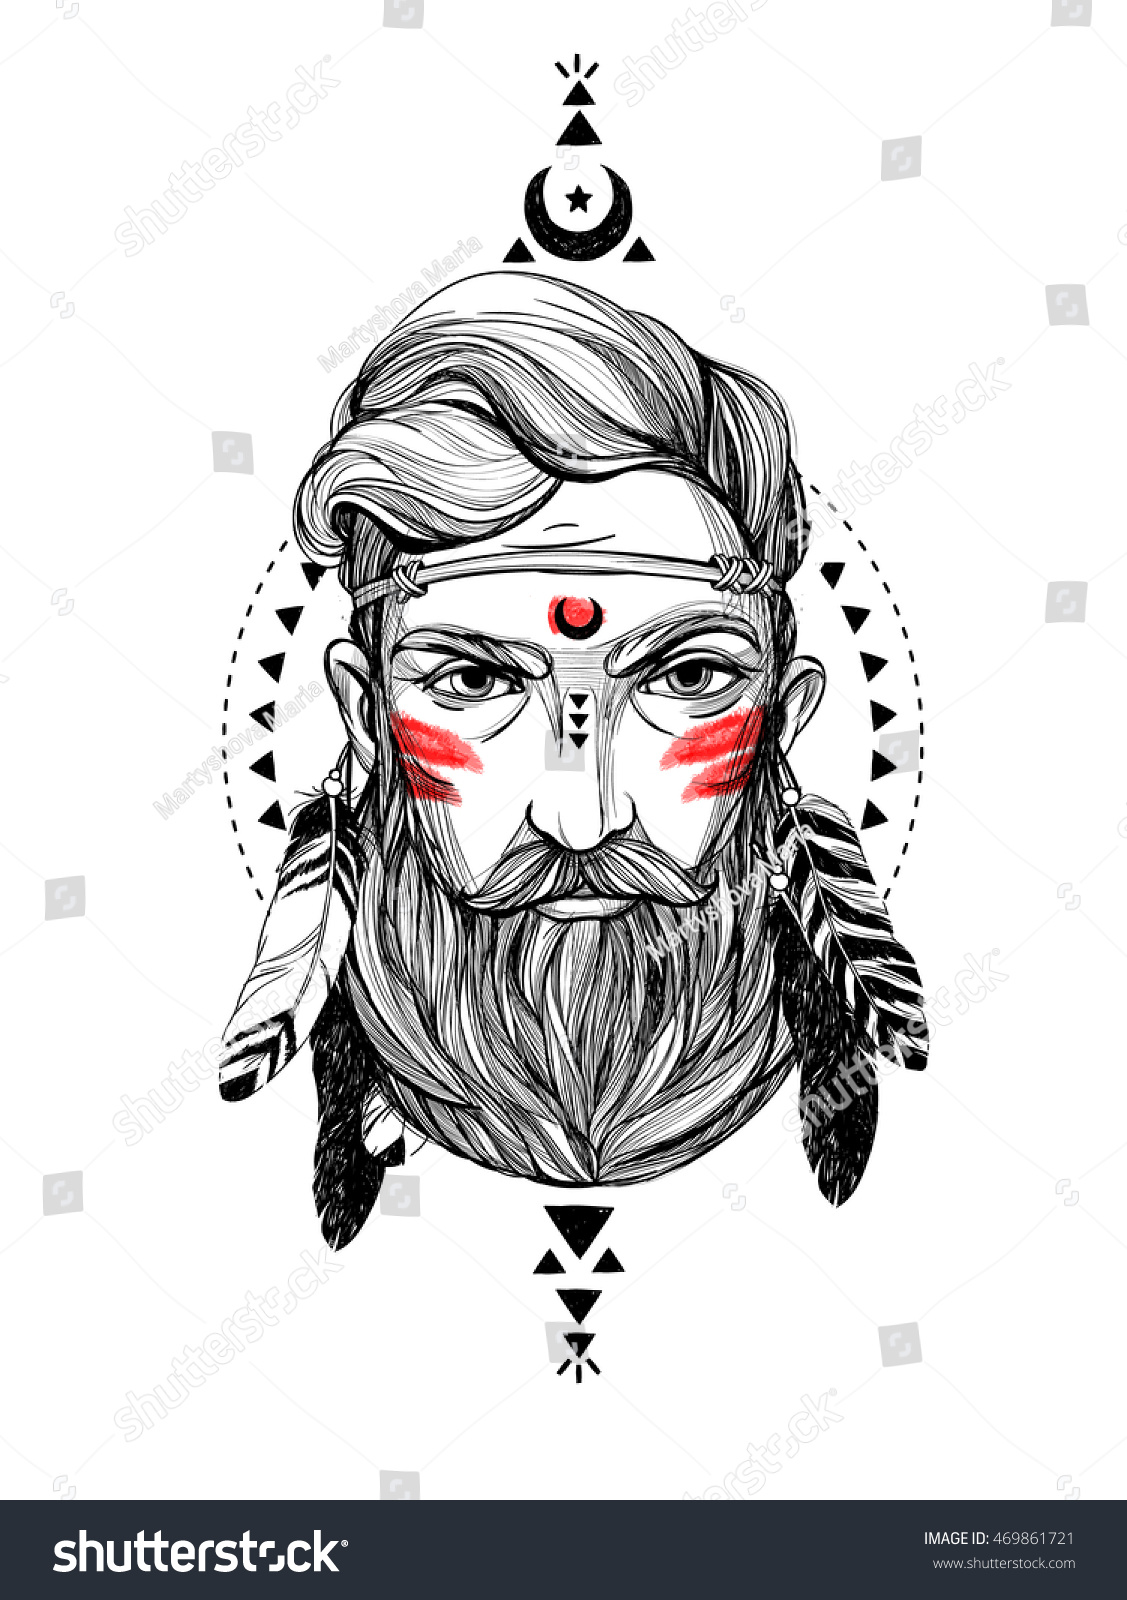 The hipster coloring book for adults - Hand Drawn Portrait Man With Feathers And Ethnic Symbols Vector Hand Drawn Hipster Illustration Isolated